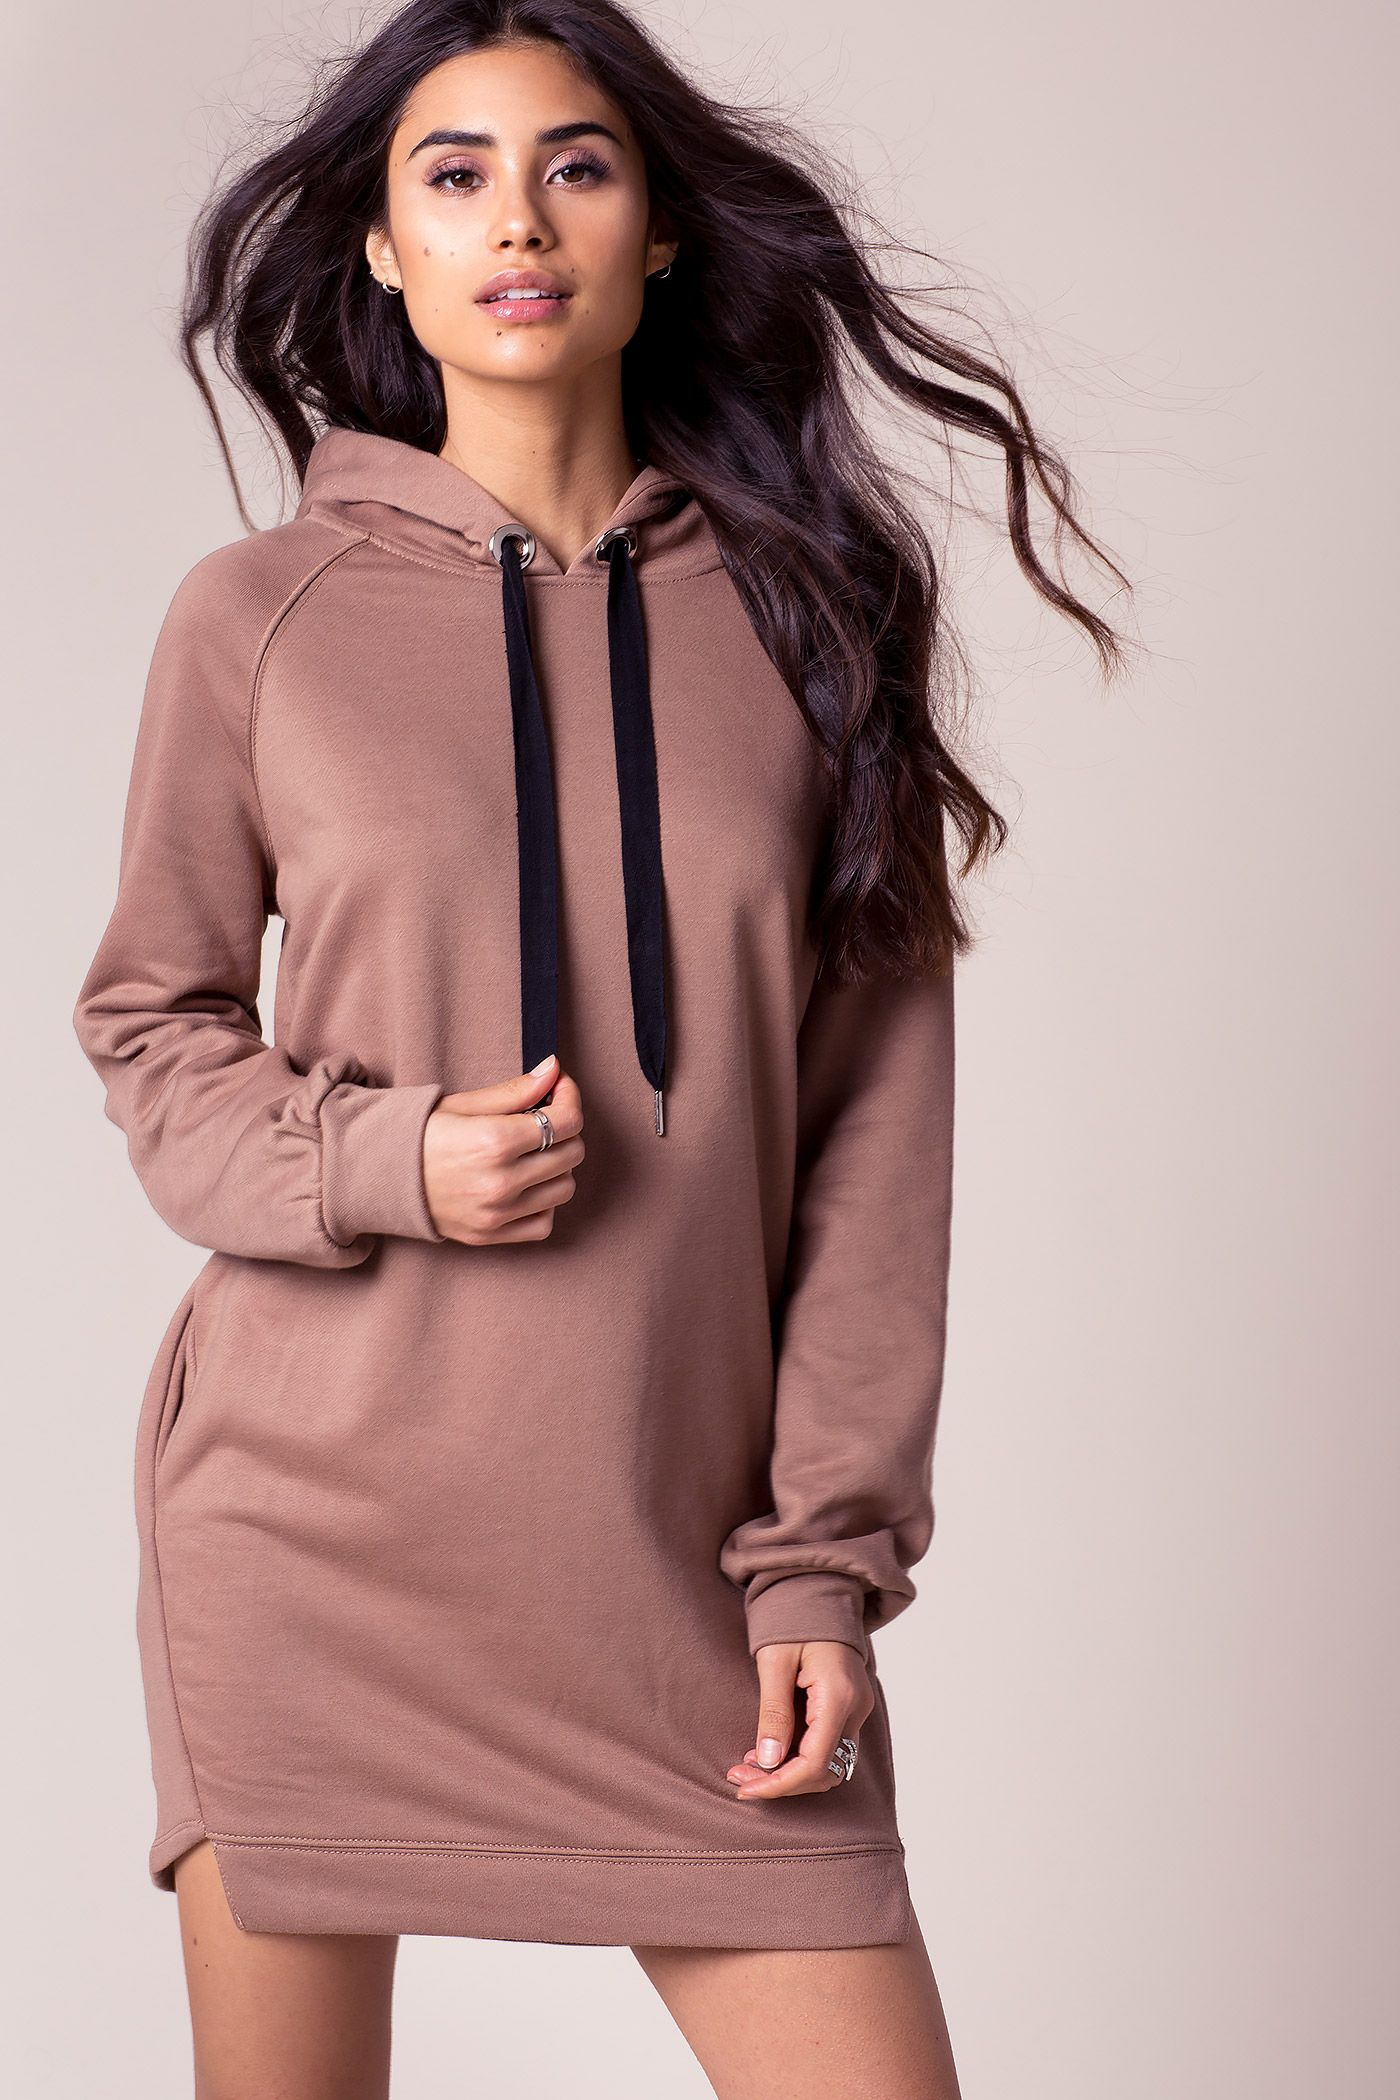 Dresses with a hood - models for real fashionistas